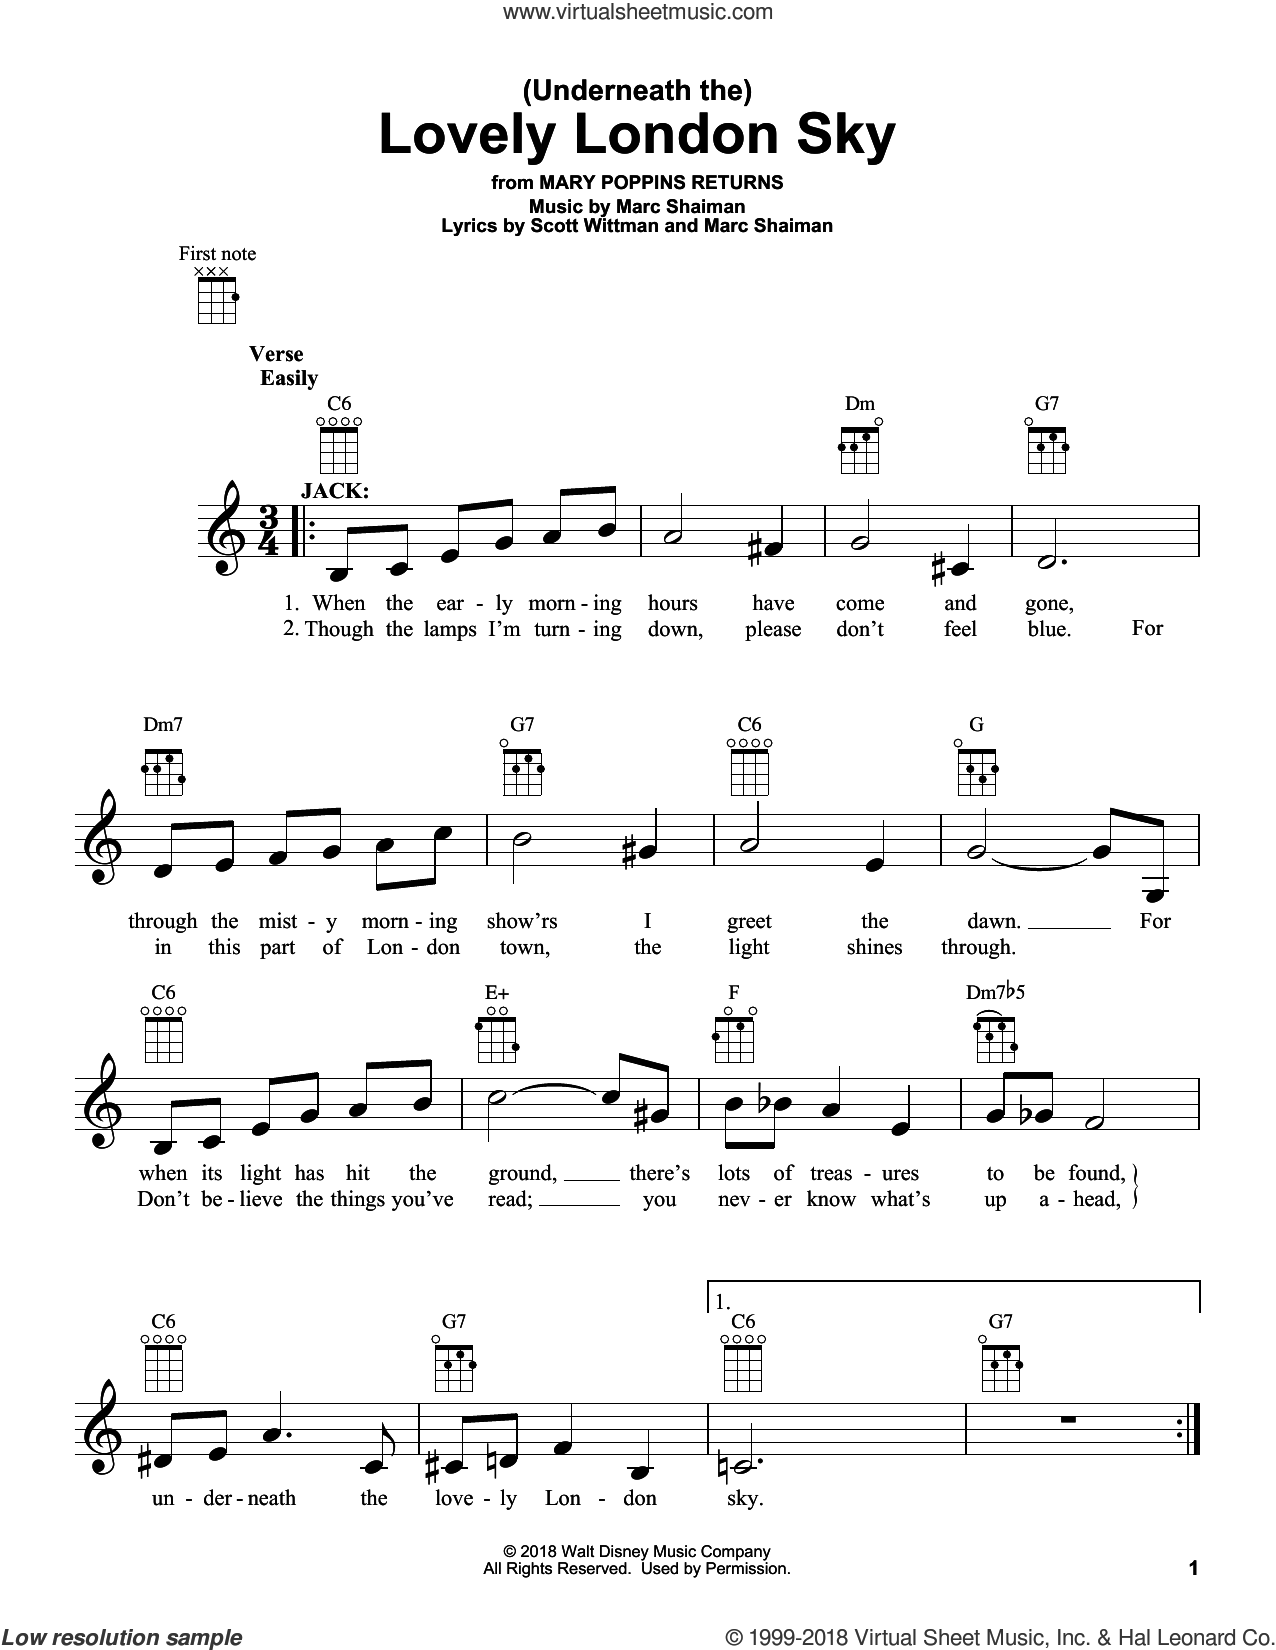 (Underneath The) Lovely London Sky (from Mary Poppins Returns) sheet music for ukulele by Lin-Manuel Miranda, Marc Shaiman and Scott Wittman, intermediate skill level